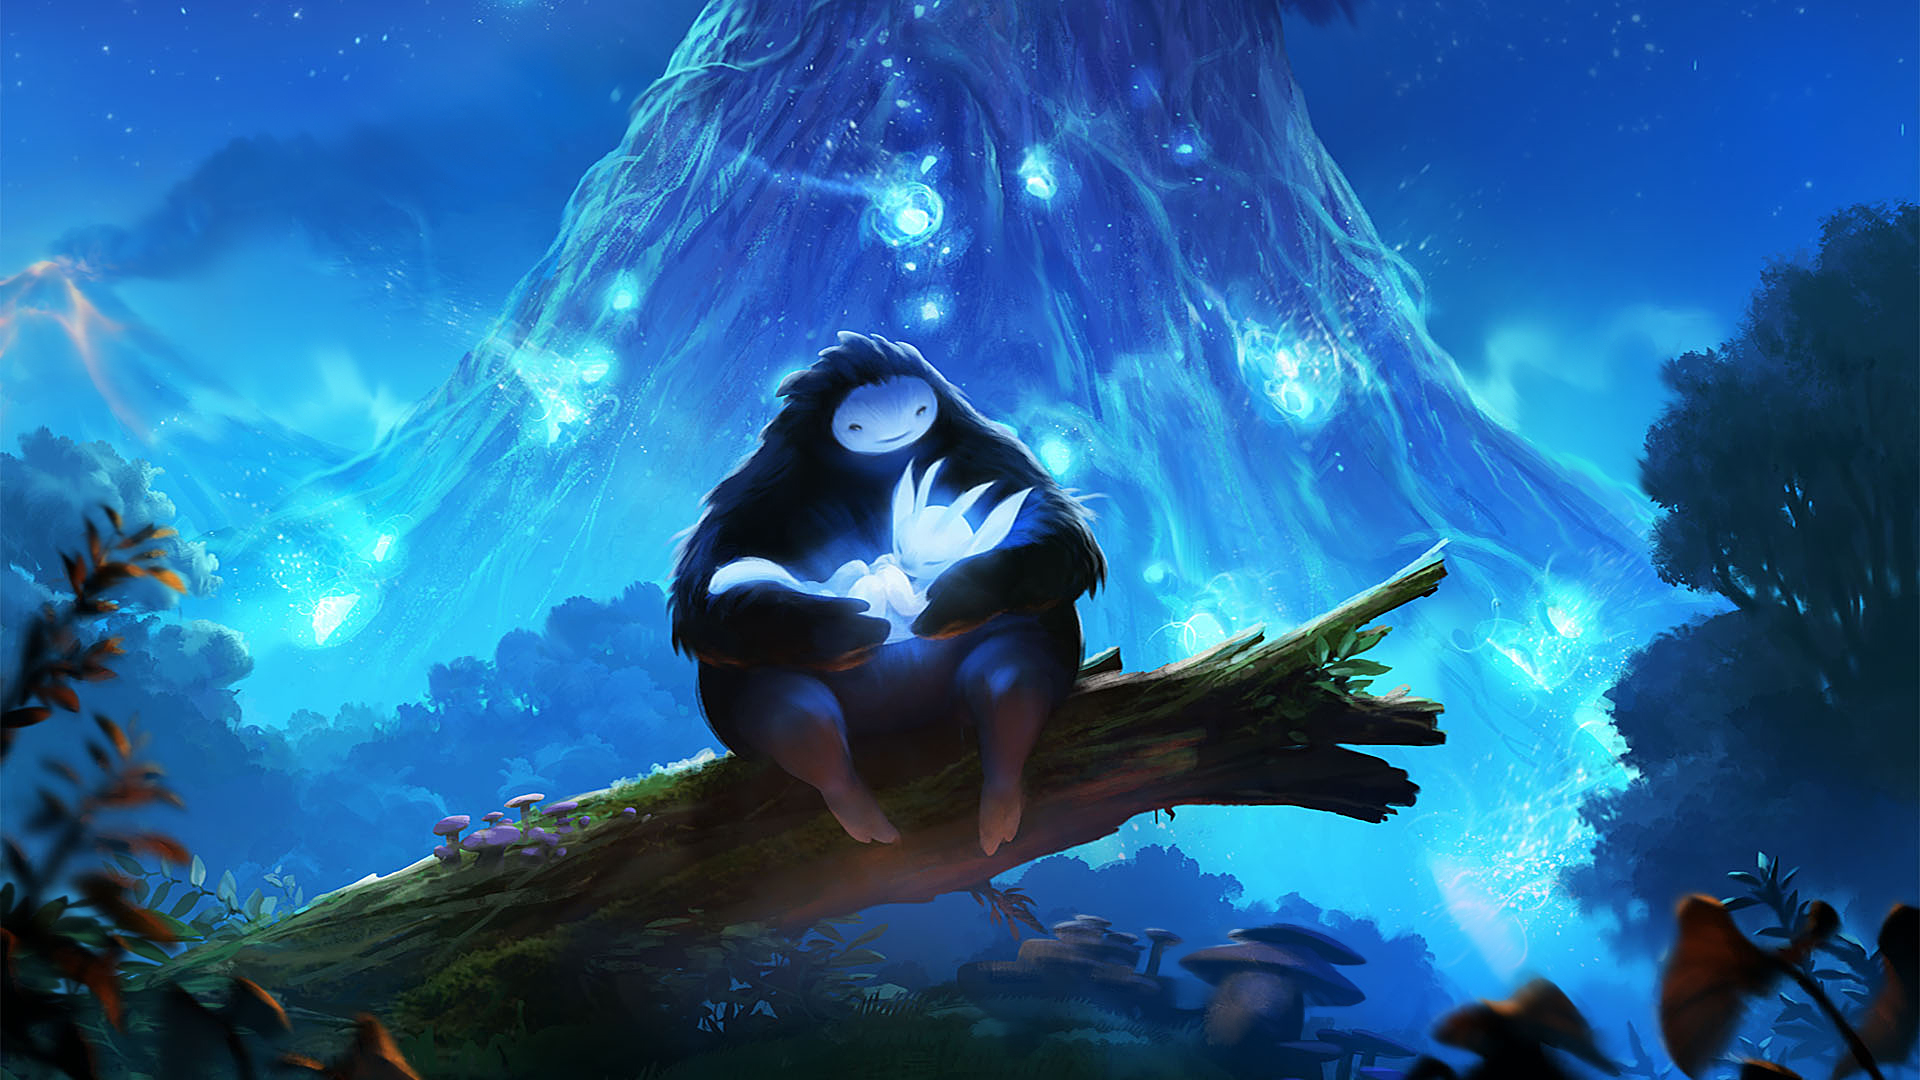 Love Is Blind Wallpaper In Hd : 44 Ori and the Blind Forest HD Wallpapers Background Images - Wallpaper Abyss